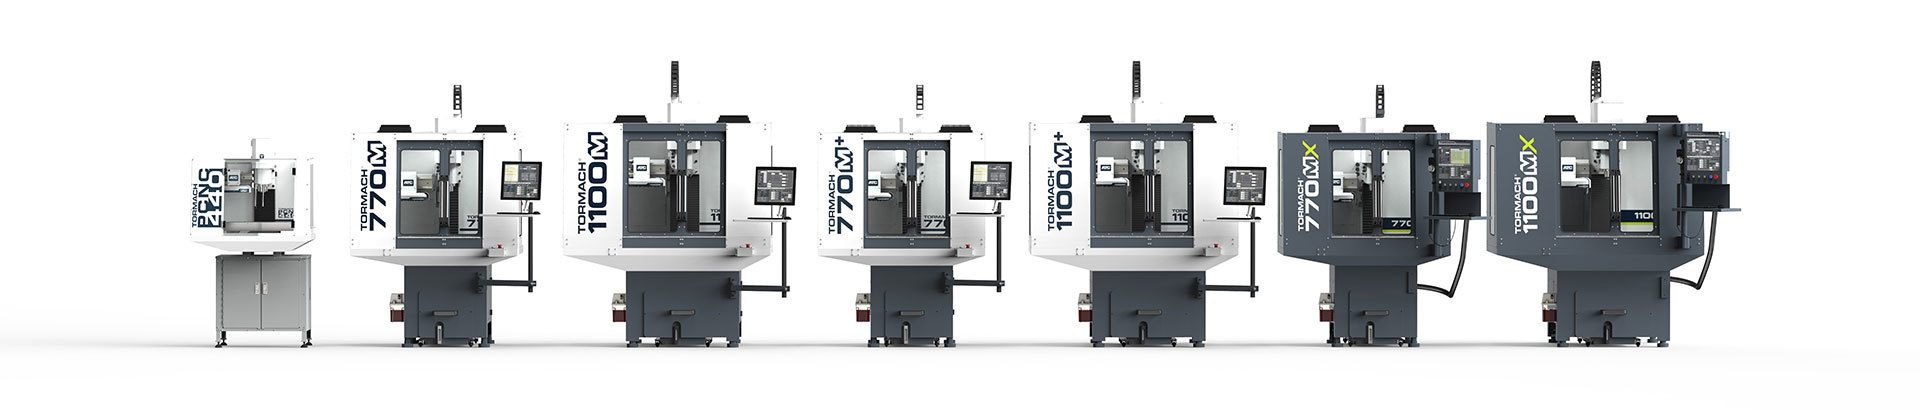 Tormach-Mill-Line-Up---Feb-2021